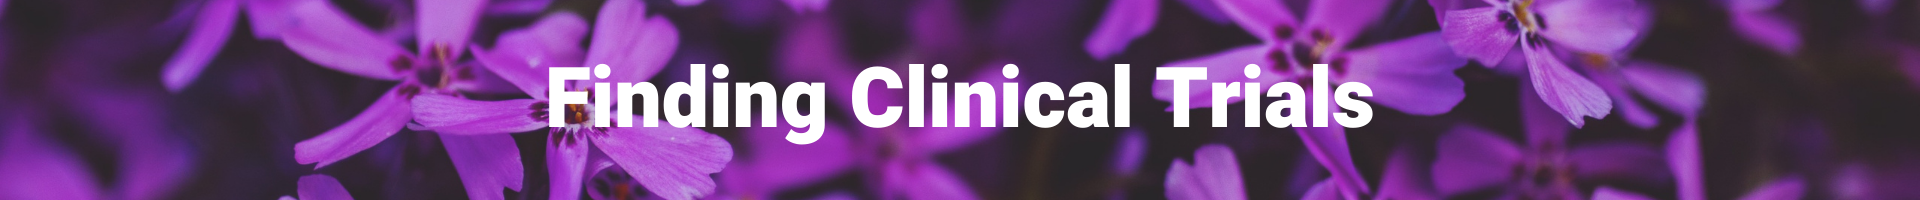 """The text """"Finding Clinical Trials"""" in white on a purple flower background."""